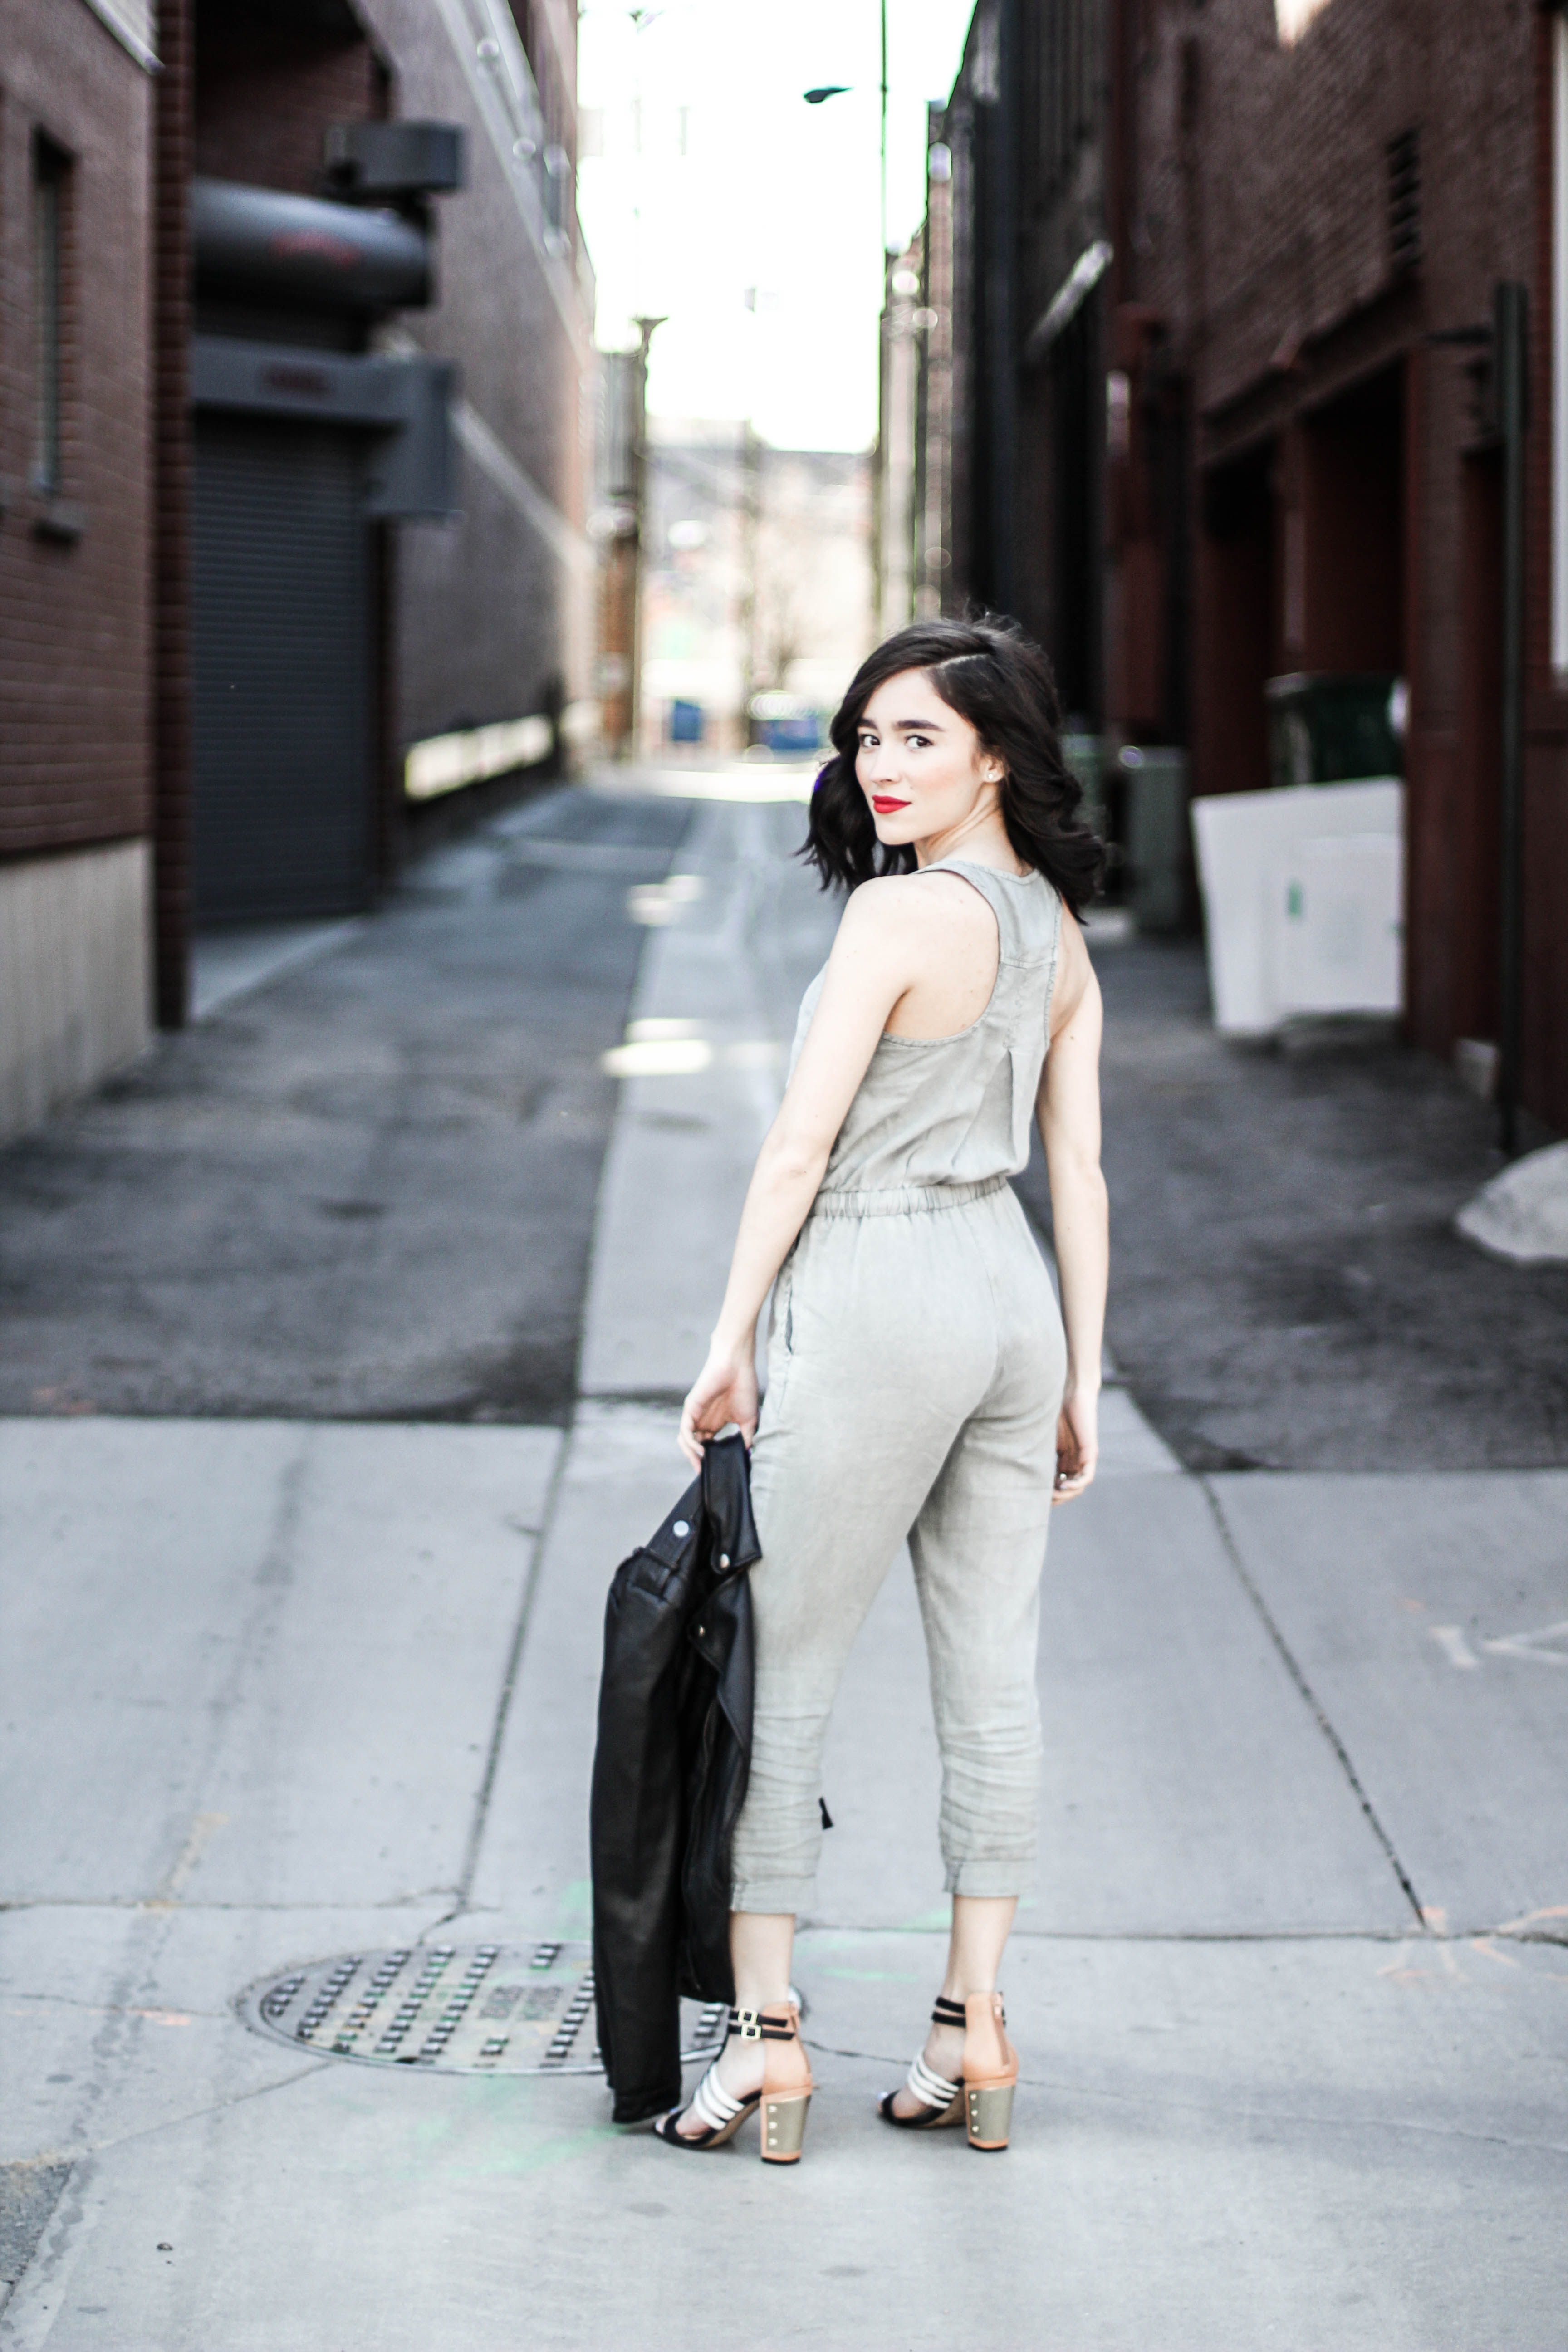 b9726ef8e22 I ve always had a slightly unhealthy addiction to rompers and jumpsuits.  This particular Cloth   Stone drawstring jumpsuit has been hard to stray  away from.